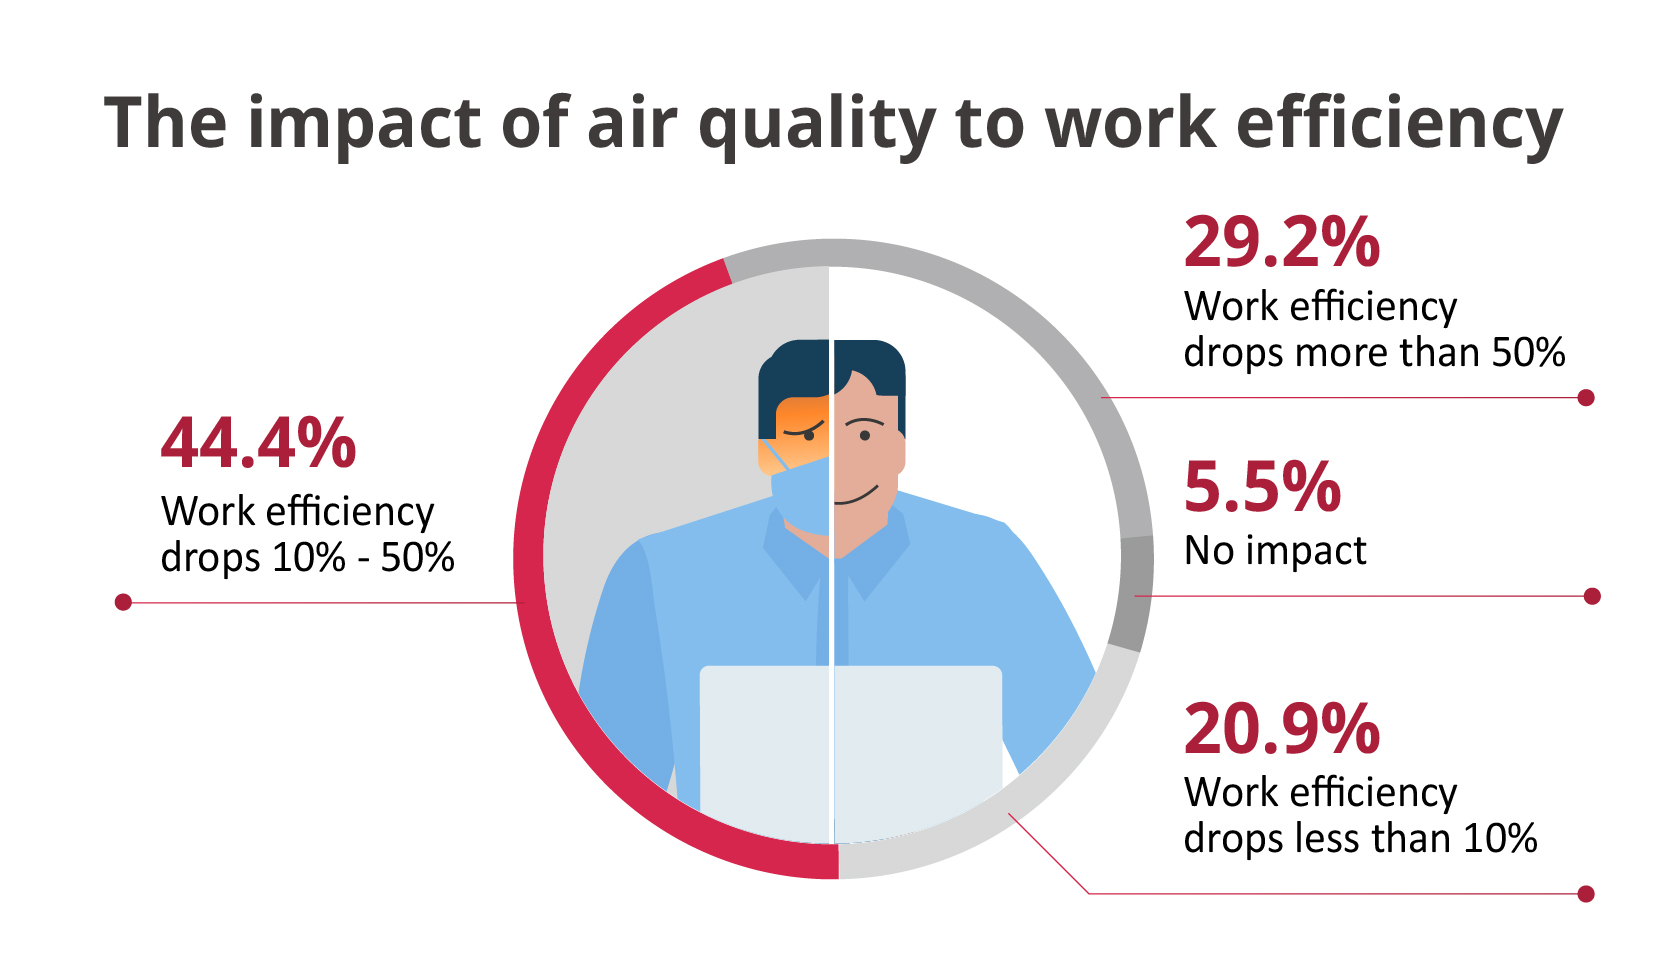 The impact of air quality to work efficiency